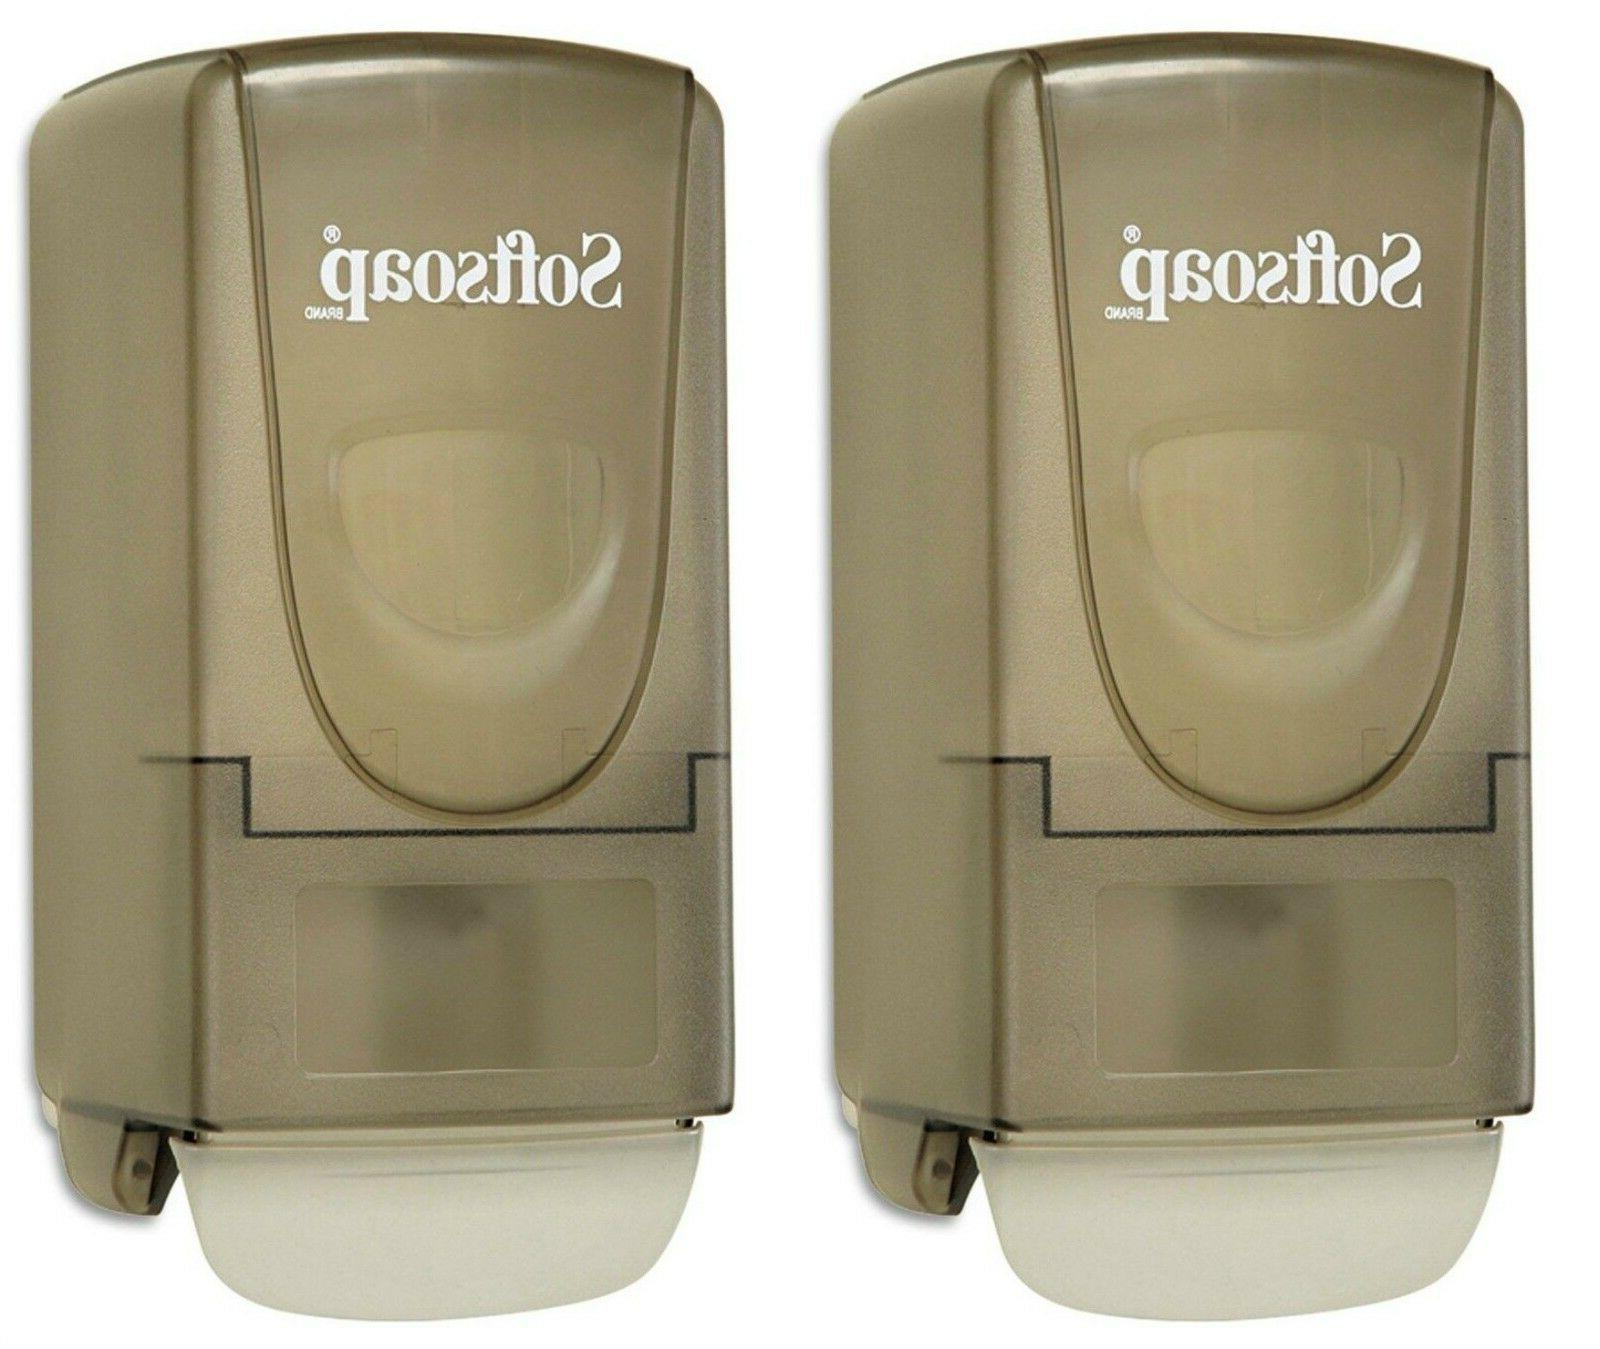 2 Softsoap Liquid Lotion Hand Soap Bathroom Deluxe Dispenser